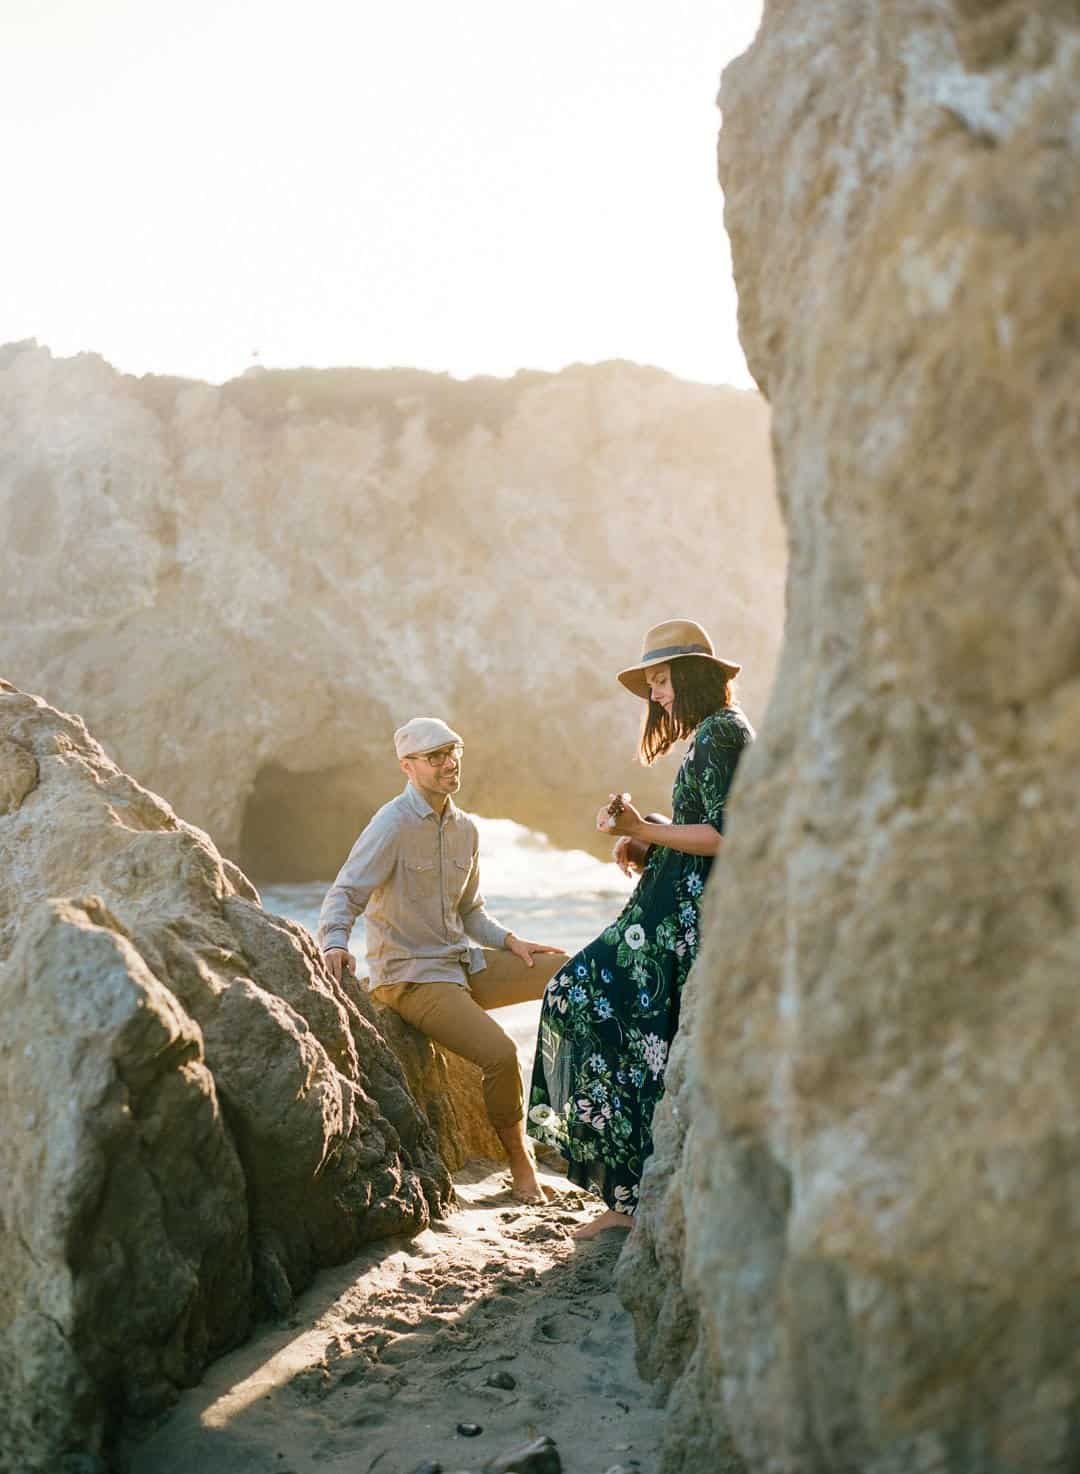 Kodak Portra 160 Film Review by Sarah Collier on Shoot It With Film